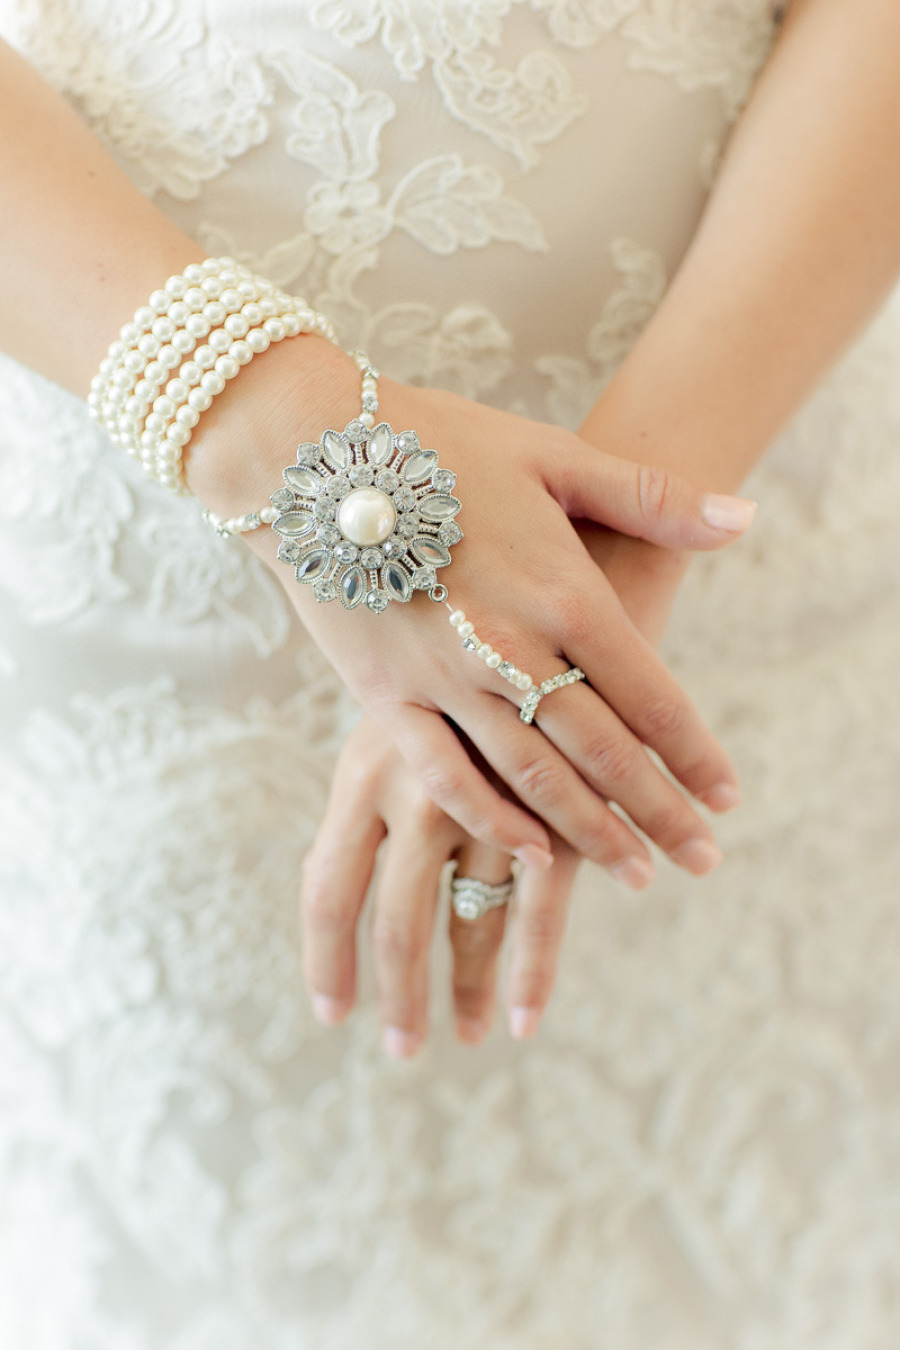 Try adorning your hand